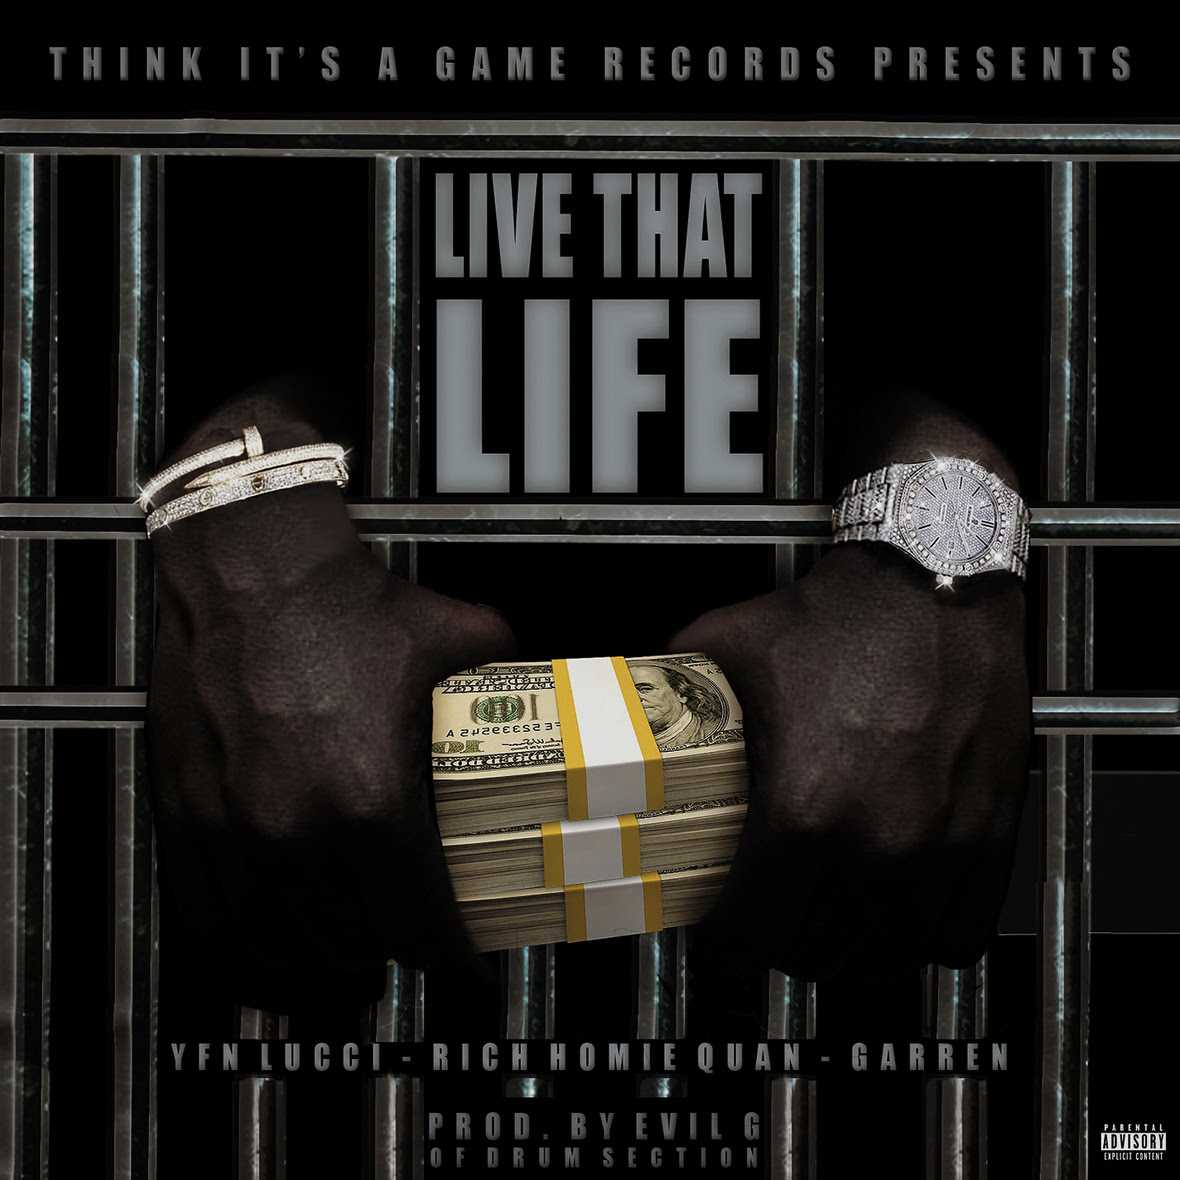 """Think It's A Game Records' Releases New Single """"Live That Live"""" Ft. YFN Lucci, Rich Homie Quan, & Garren [Audio]"""